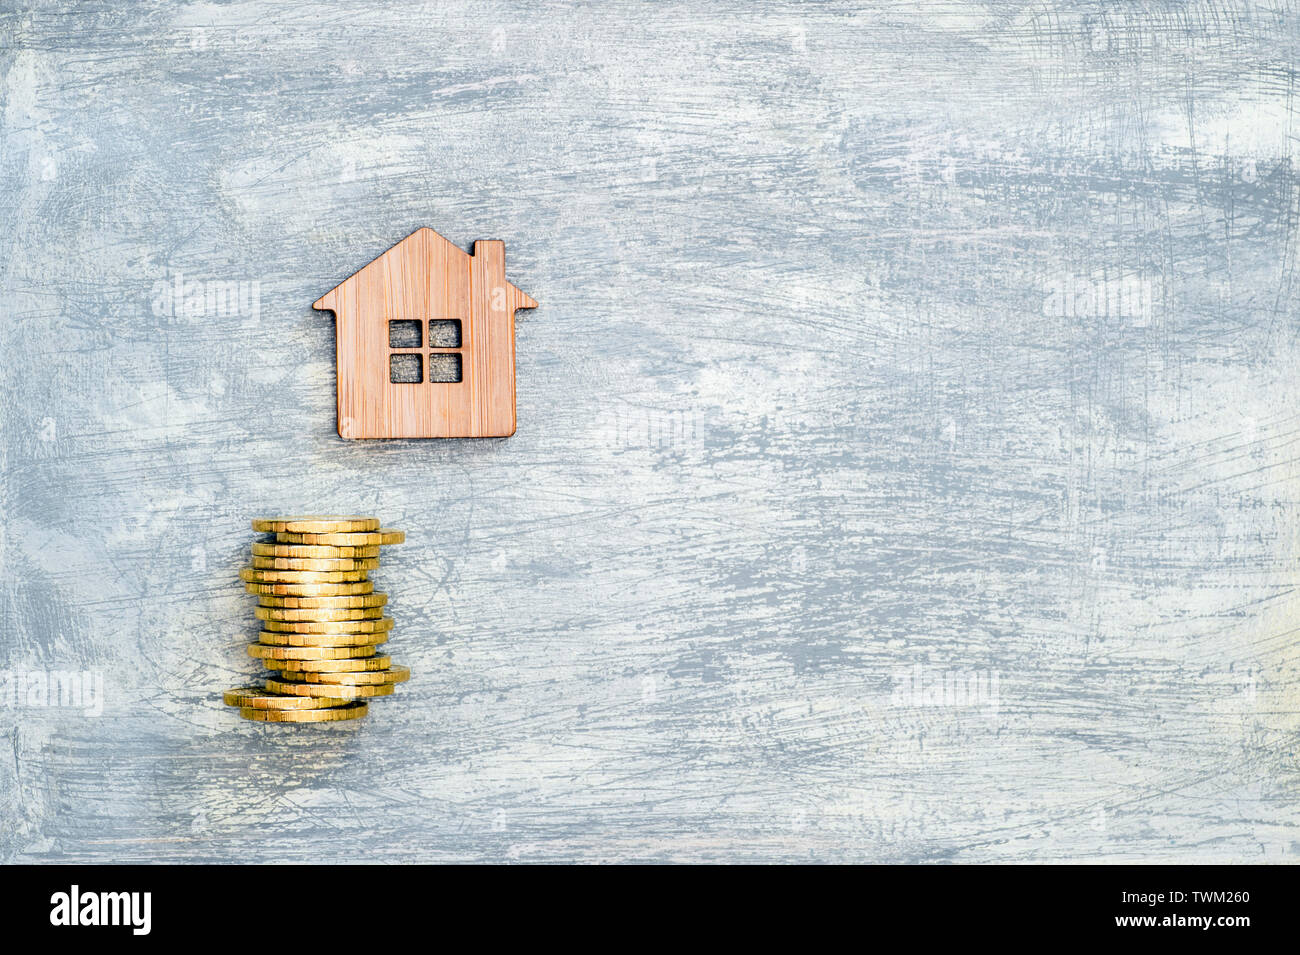 The house symbol is made of bamboo and yellow shiny coins on a scratched concrete gray background. The concept of the offer of purchase of real estate Stock Photo